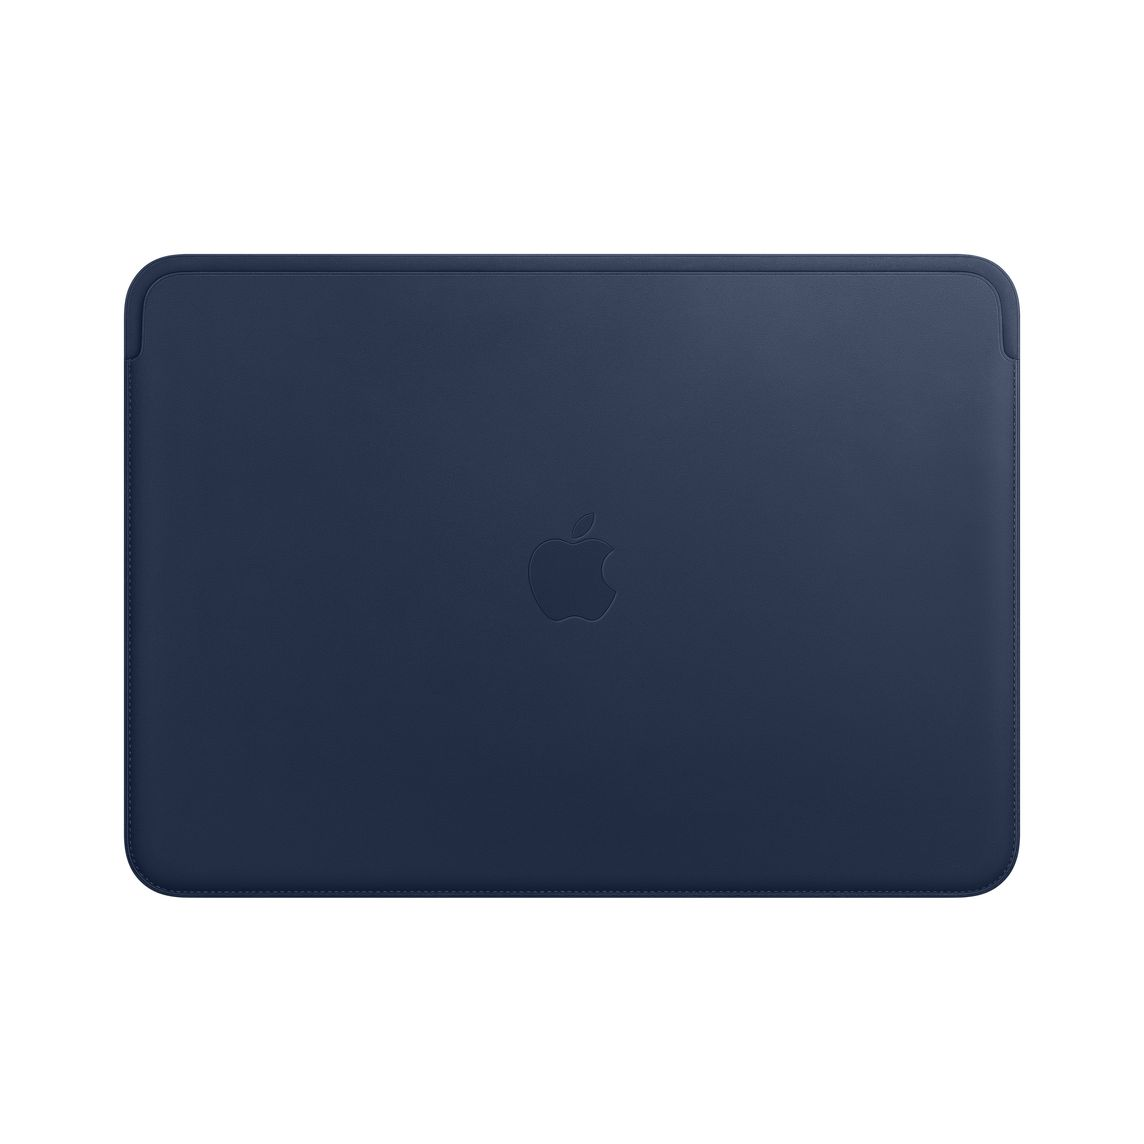 cheap for discount 4c68f 6d62a Leather Sleeve for 13-inch MacBook Air and MacBook Pro - Midnight Blue